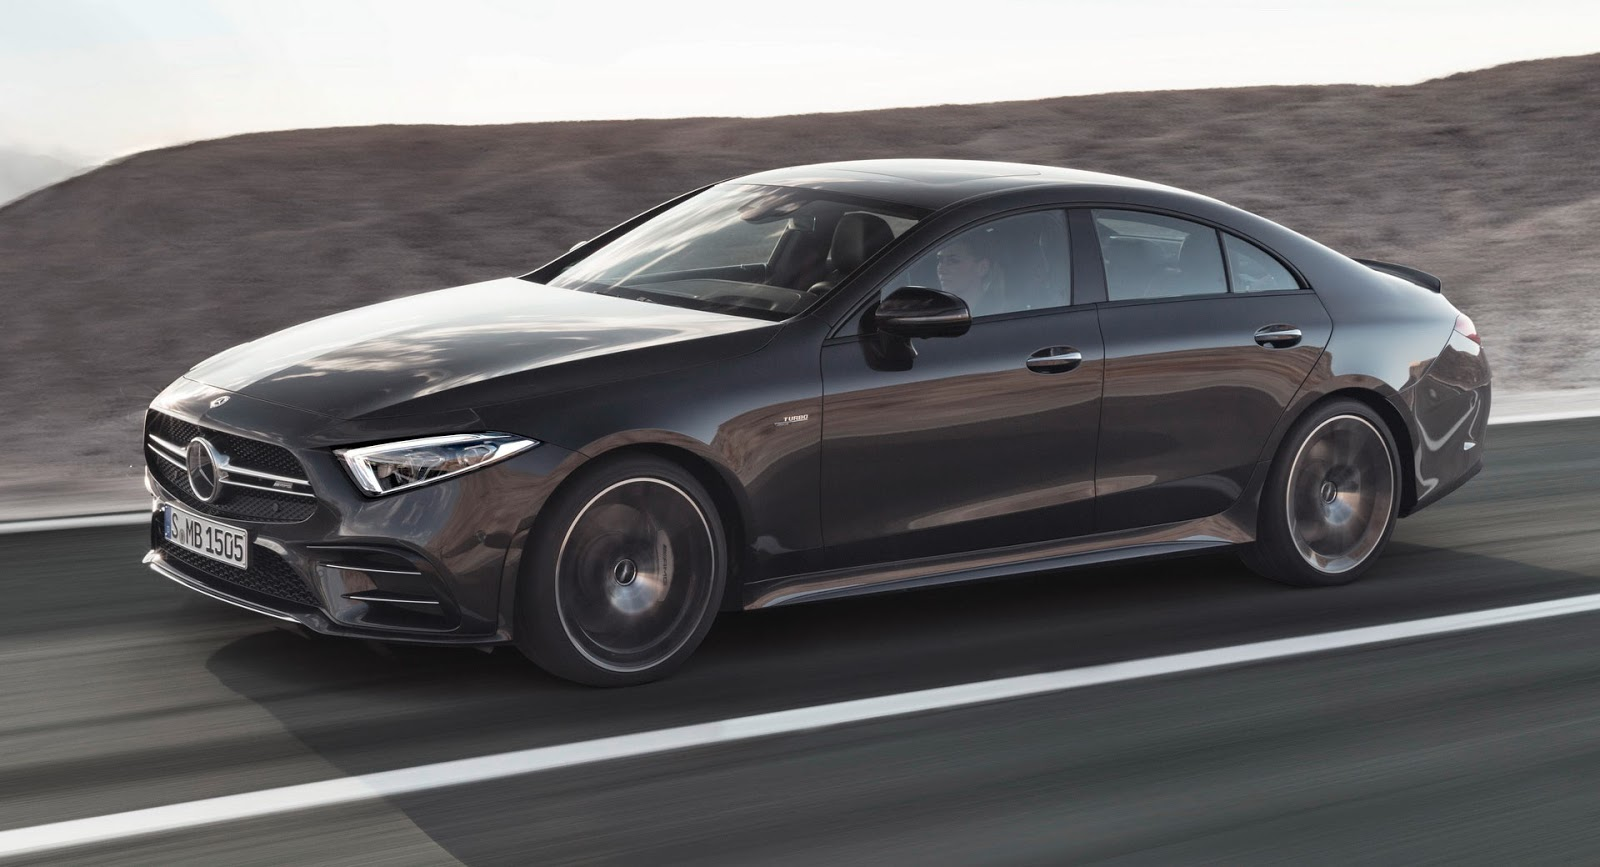 Mercedes reveals sleek hybrid AMG 53 models